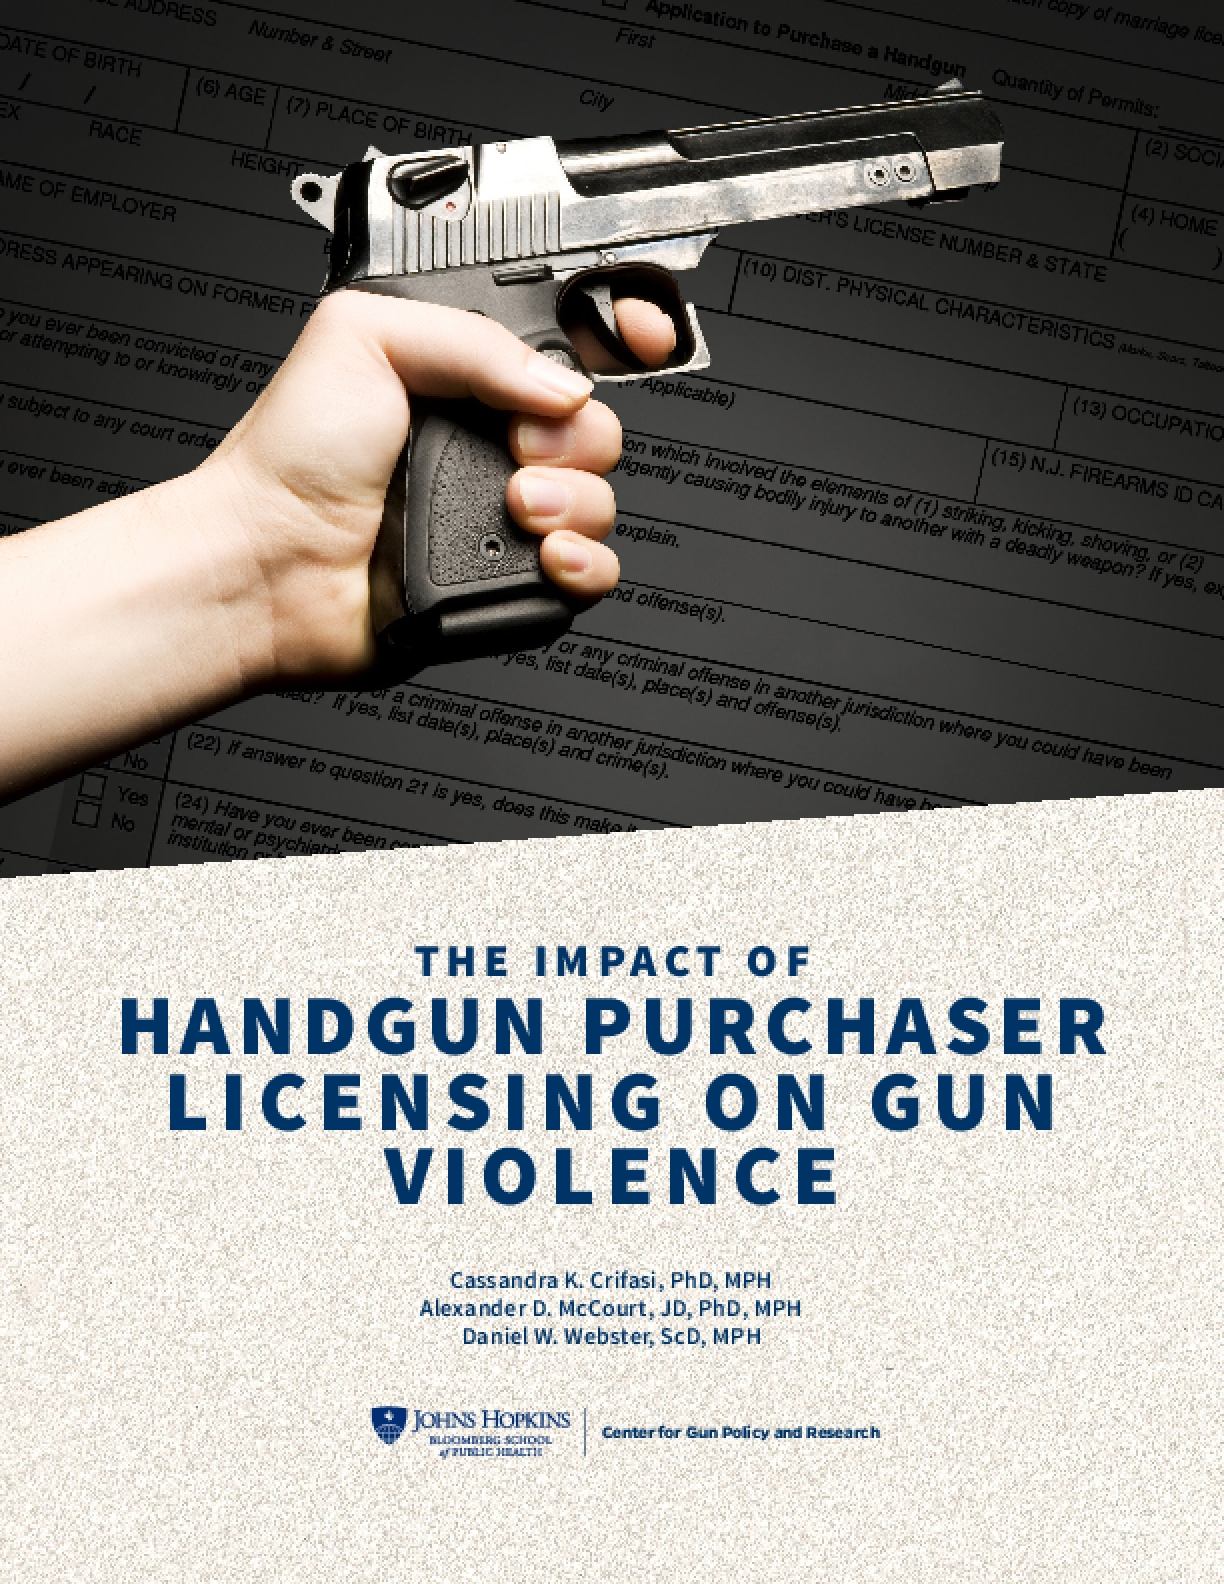 The Impact of Handgun Purchaser Licensing Laws on Gun Violence